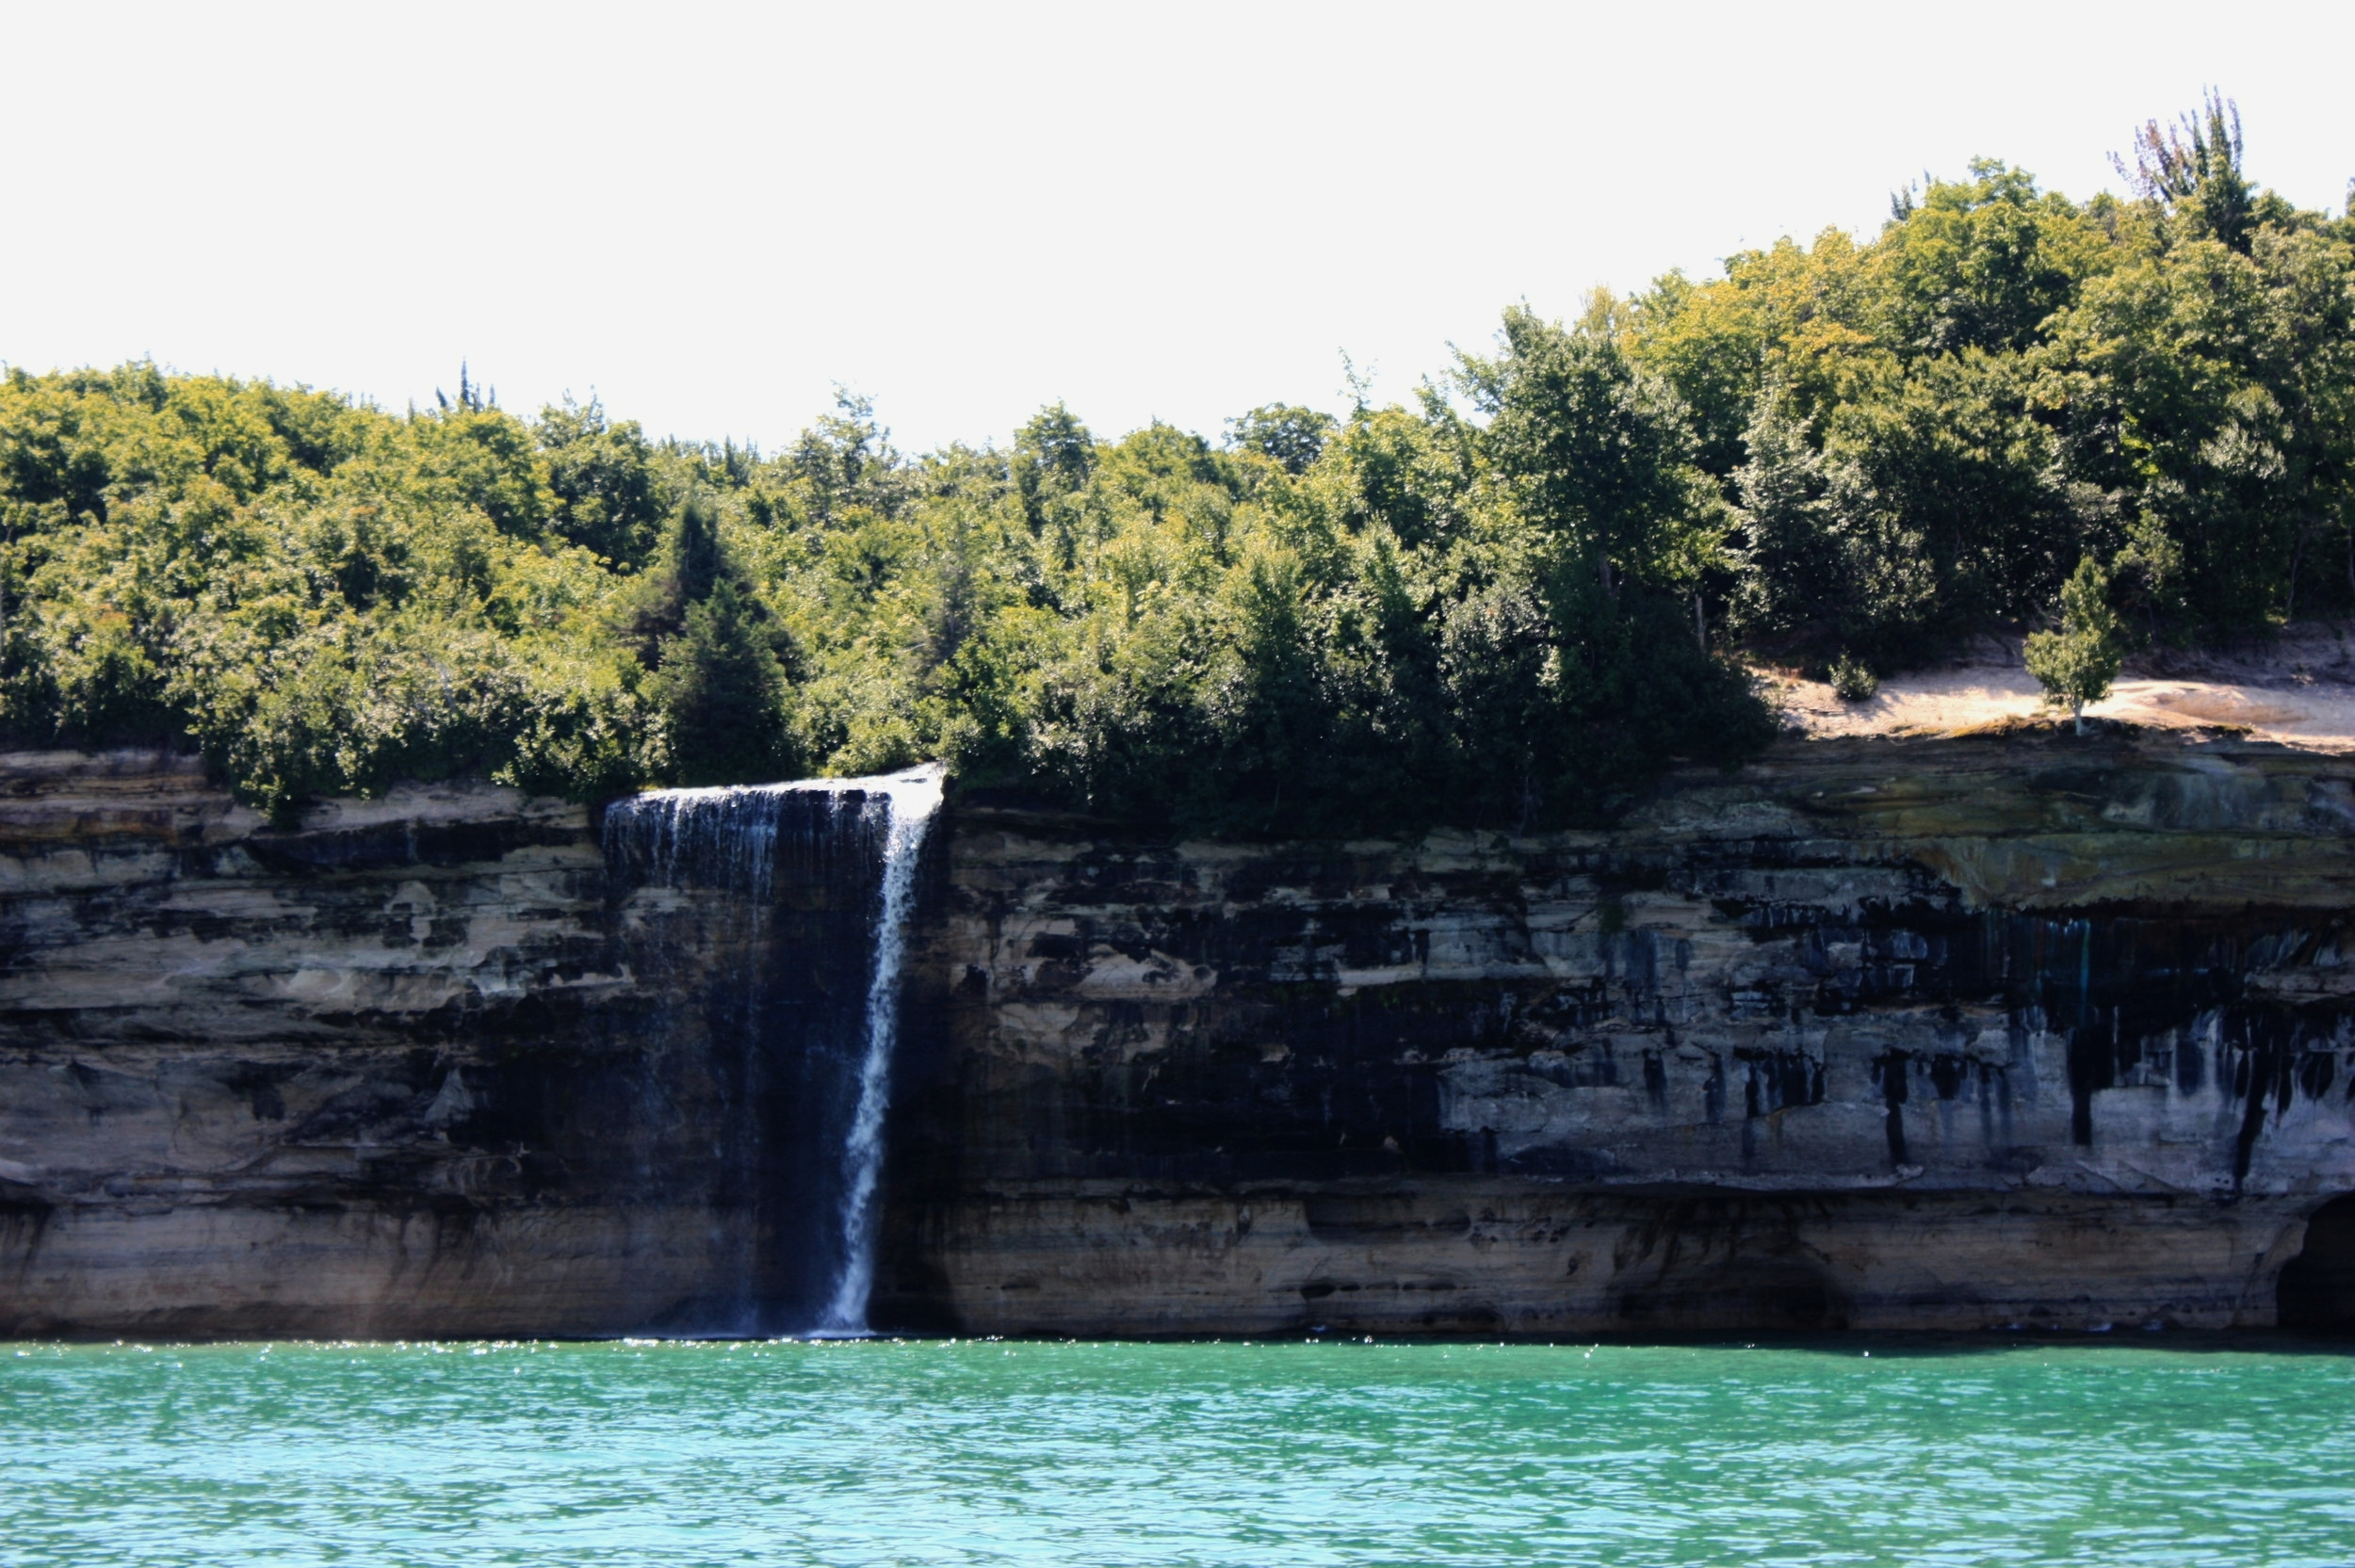 """There are  a few waterfalls  along Pictured Rocks National Lakeshore that constantly quench Lake Superior's thirst, including this little fella, Spray Falls, which is best viewed by boat. Fun fact: the remains of a ship named """"Superior,"""" which sank in 1856, lie at the base of Spray Falls in about 20 feet of water."""